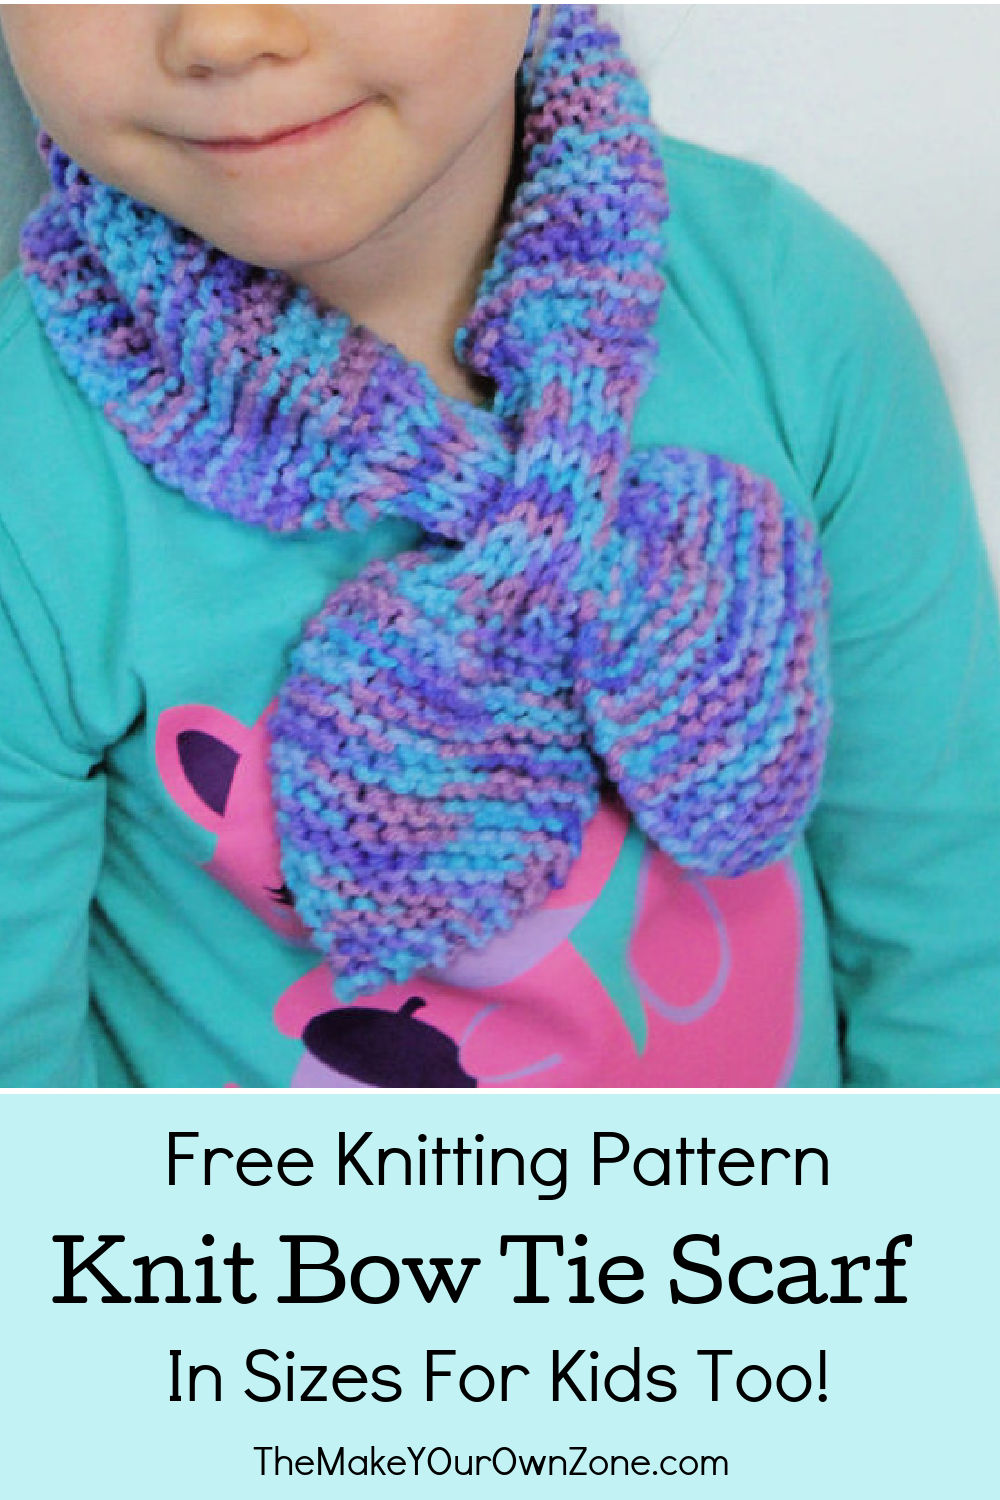 knit bow tie scarf for kids